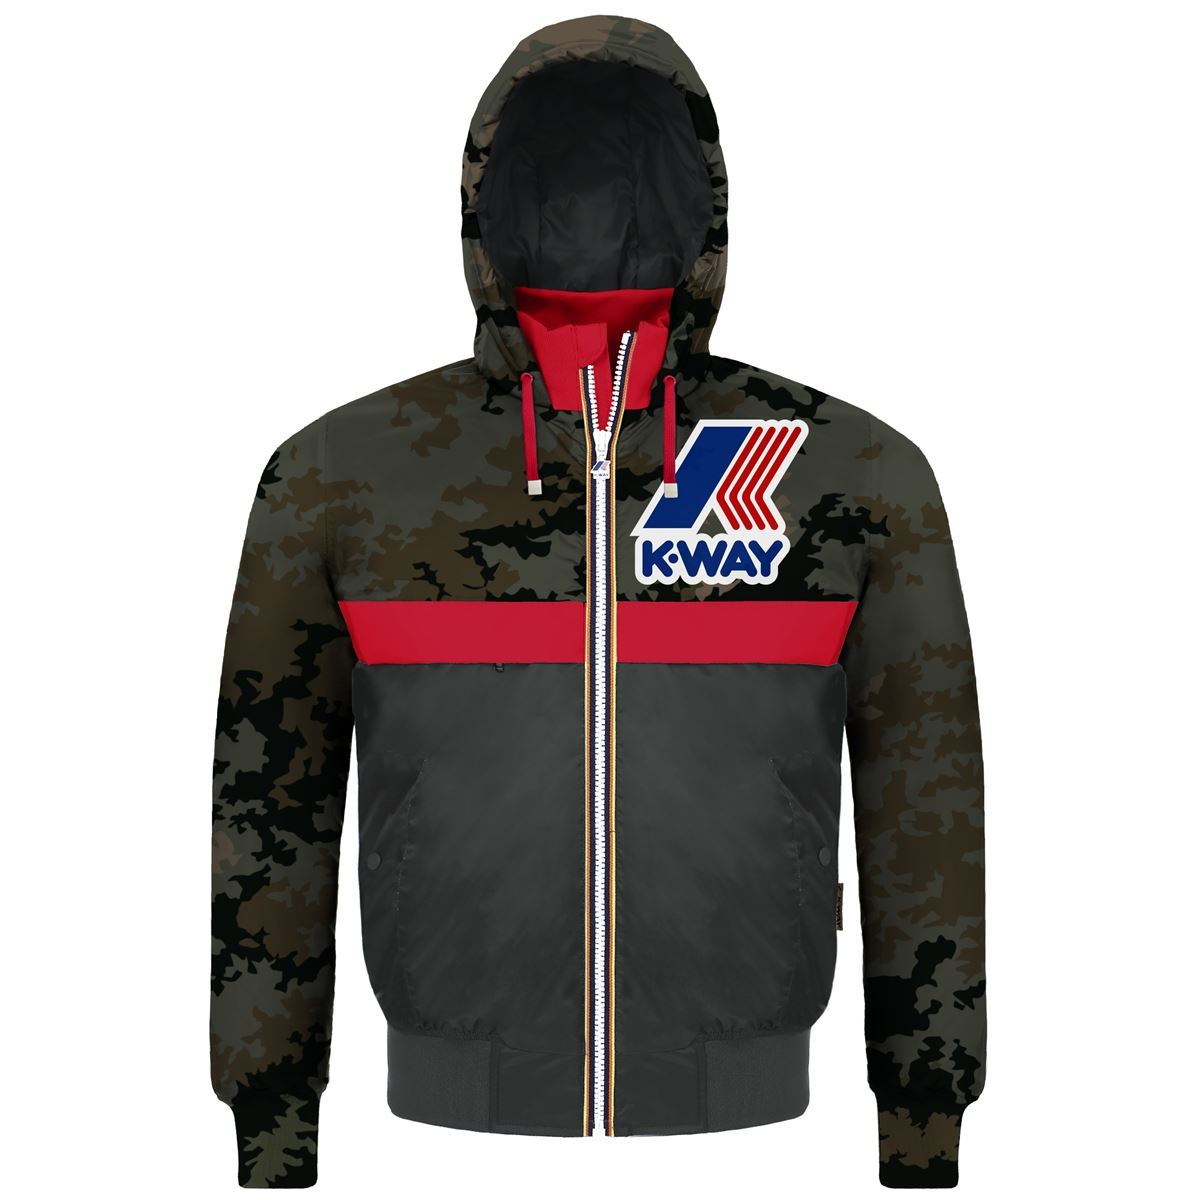 K-Way Remix 145 Padded Graphic Jacket ジャケット